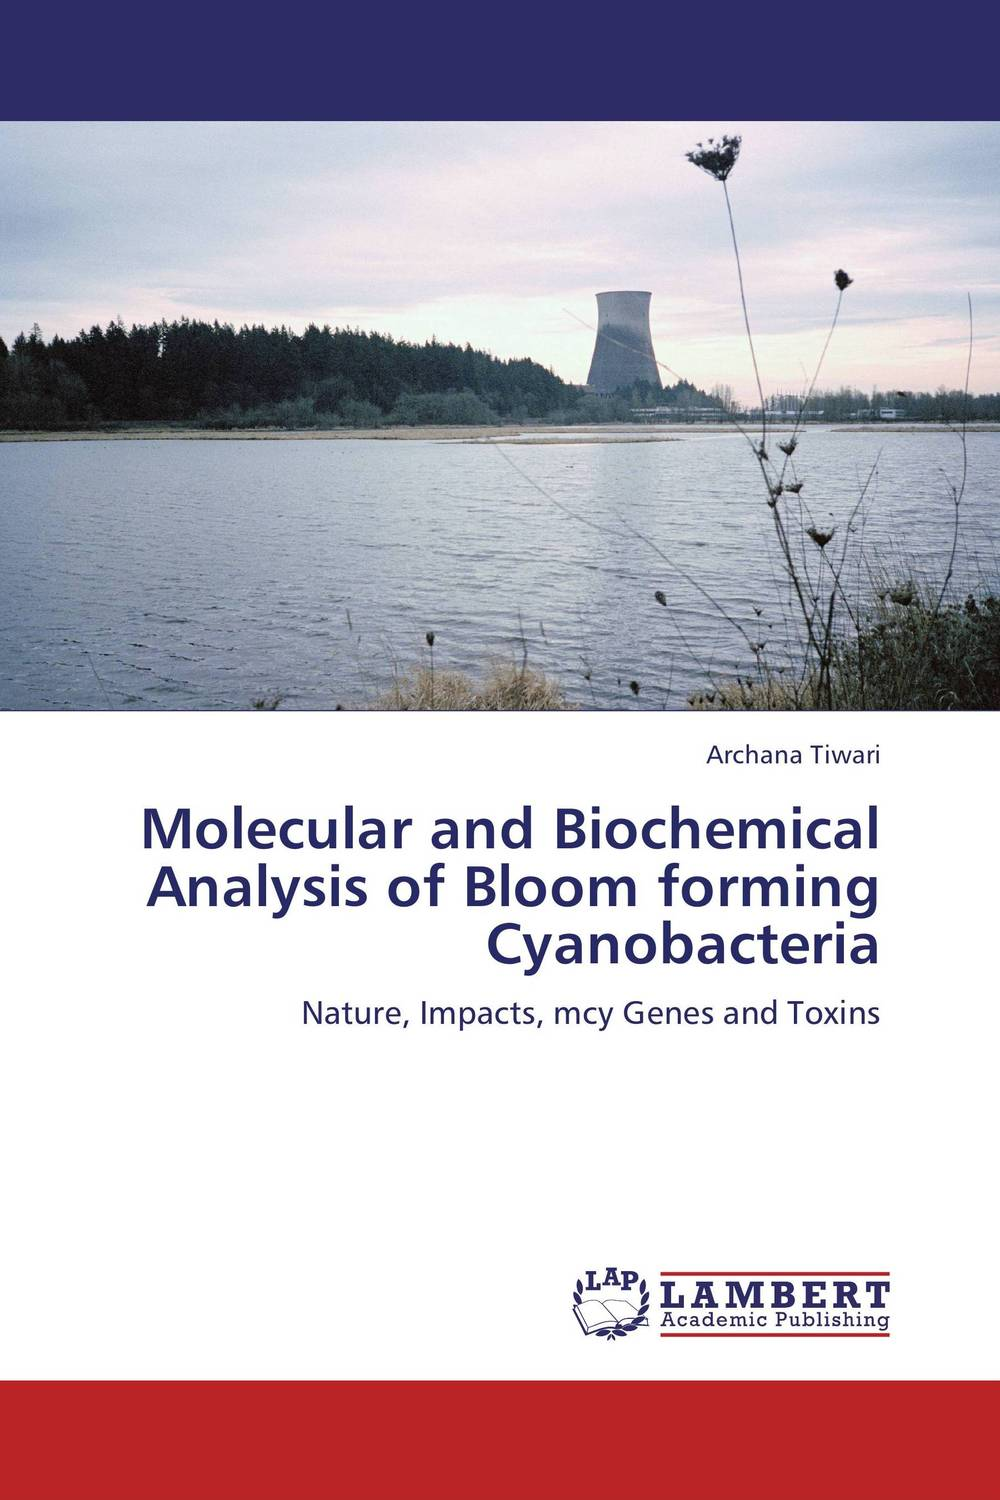 Molecular and Biochemical Analysis of Bloom forming Cyanobacteria purnima sareen sundeep kumar and rakesh singh molecular and pathological characterization of slow rusting in wheat